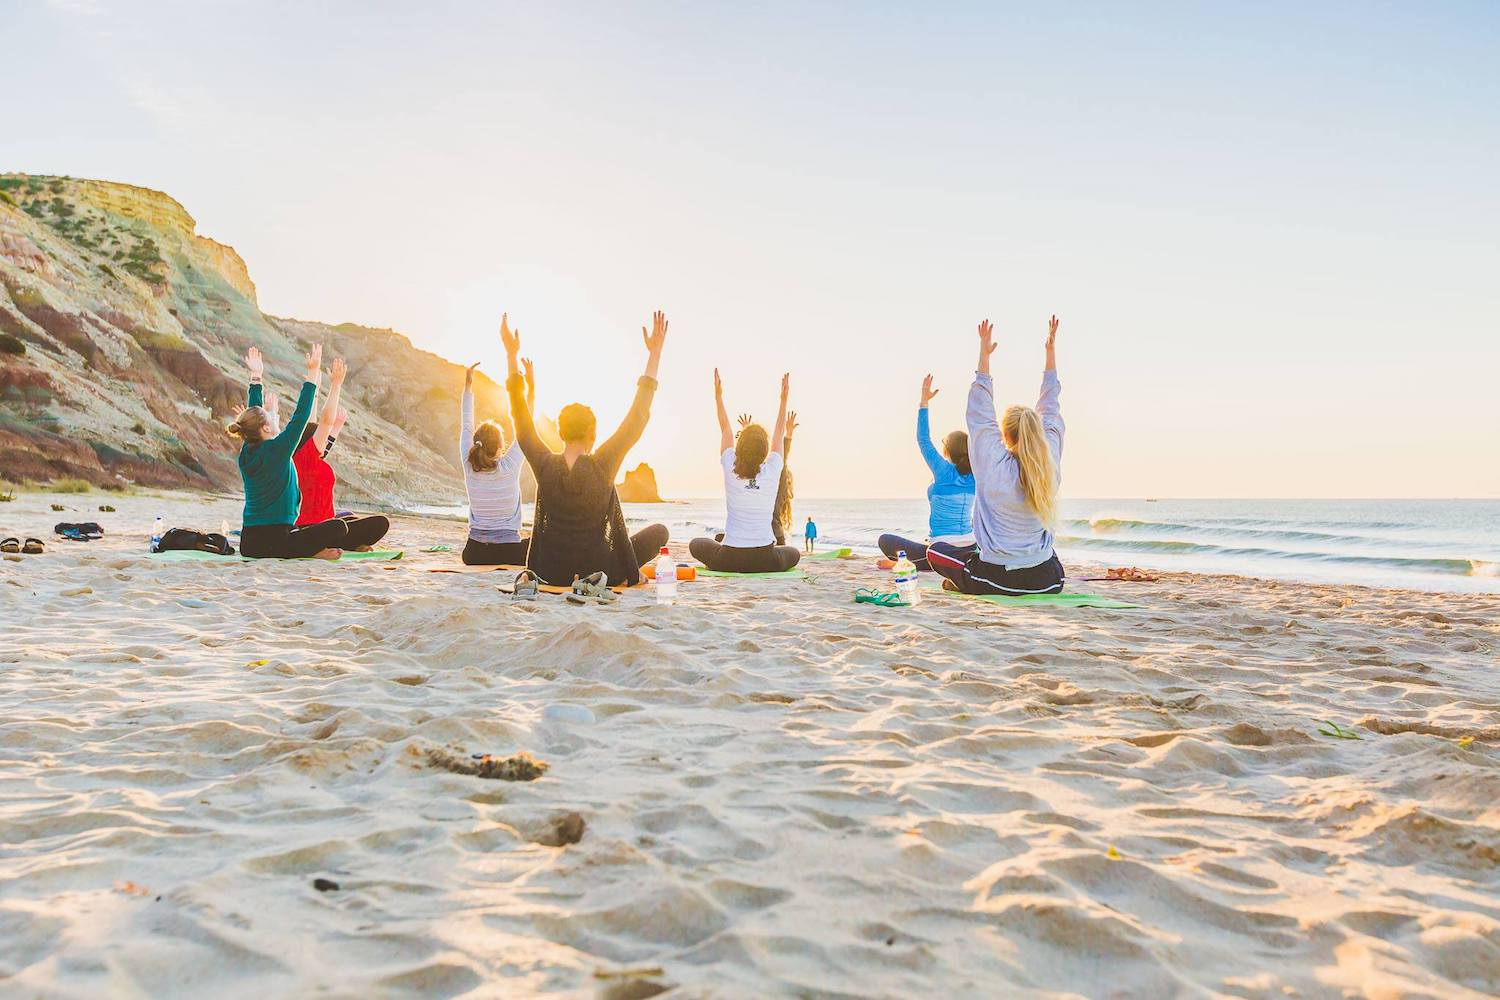 ride-on-retreats-yoga-on-the-beach.jpg